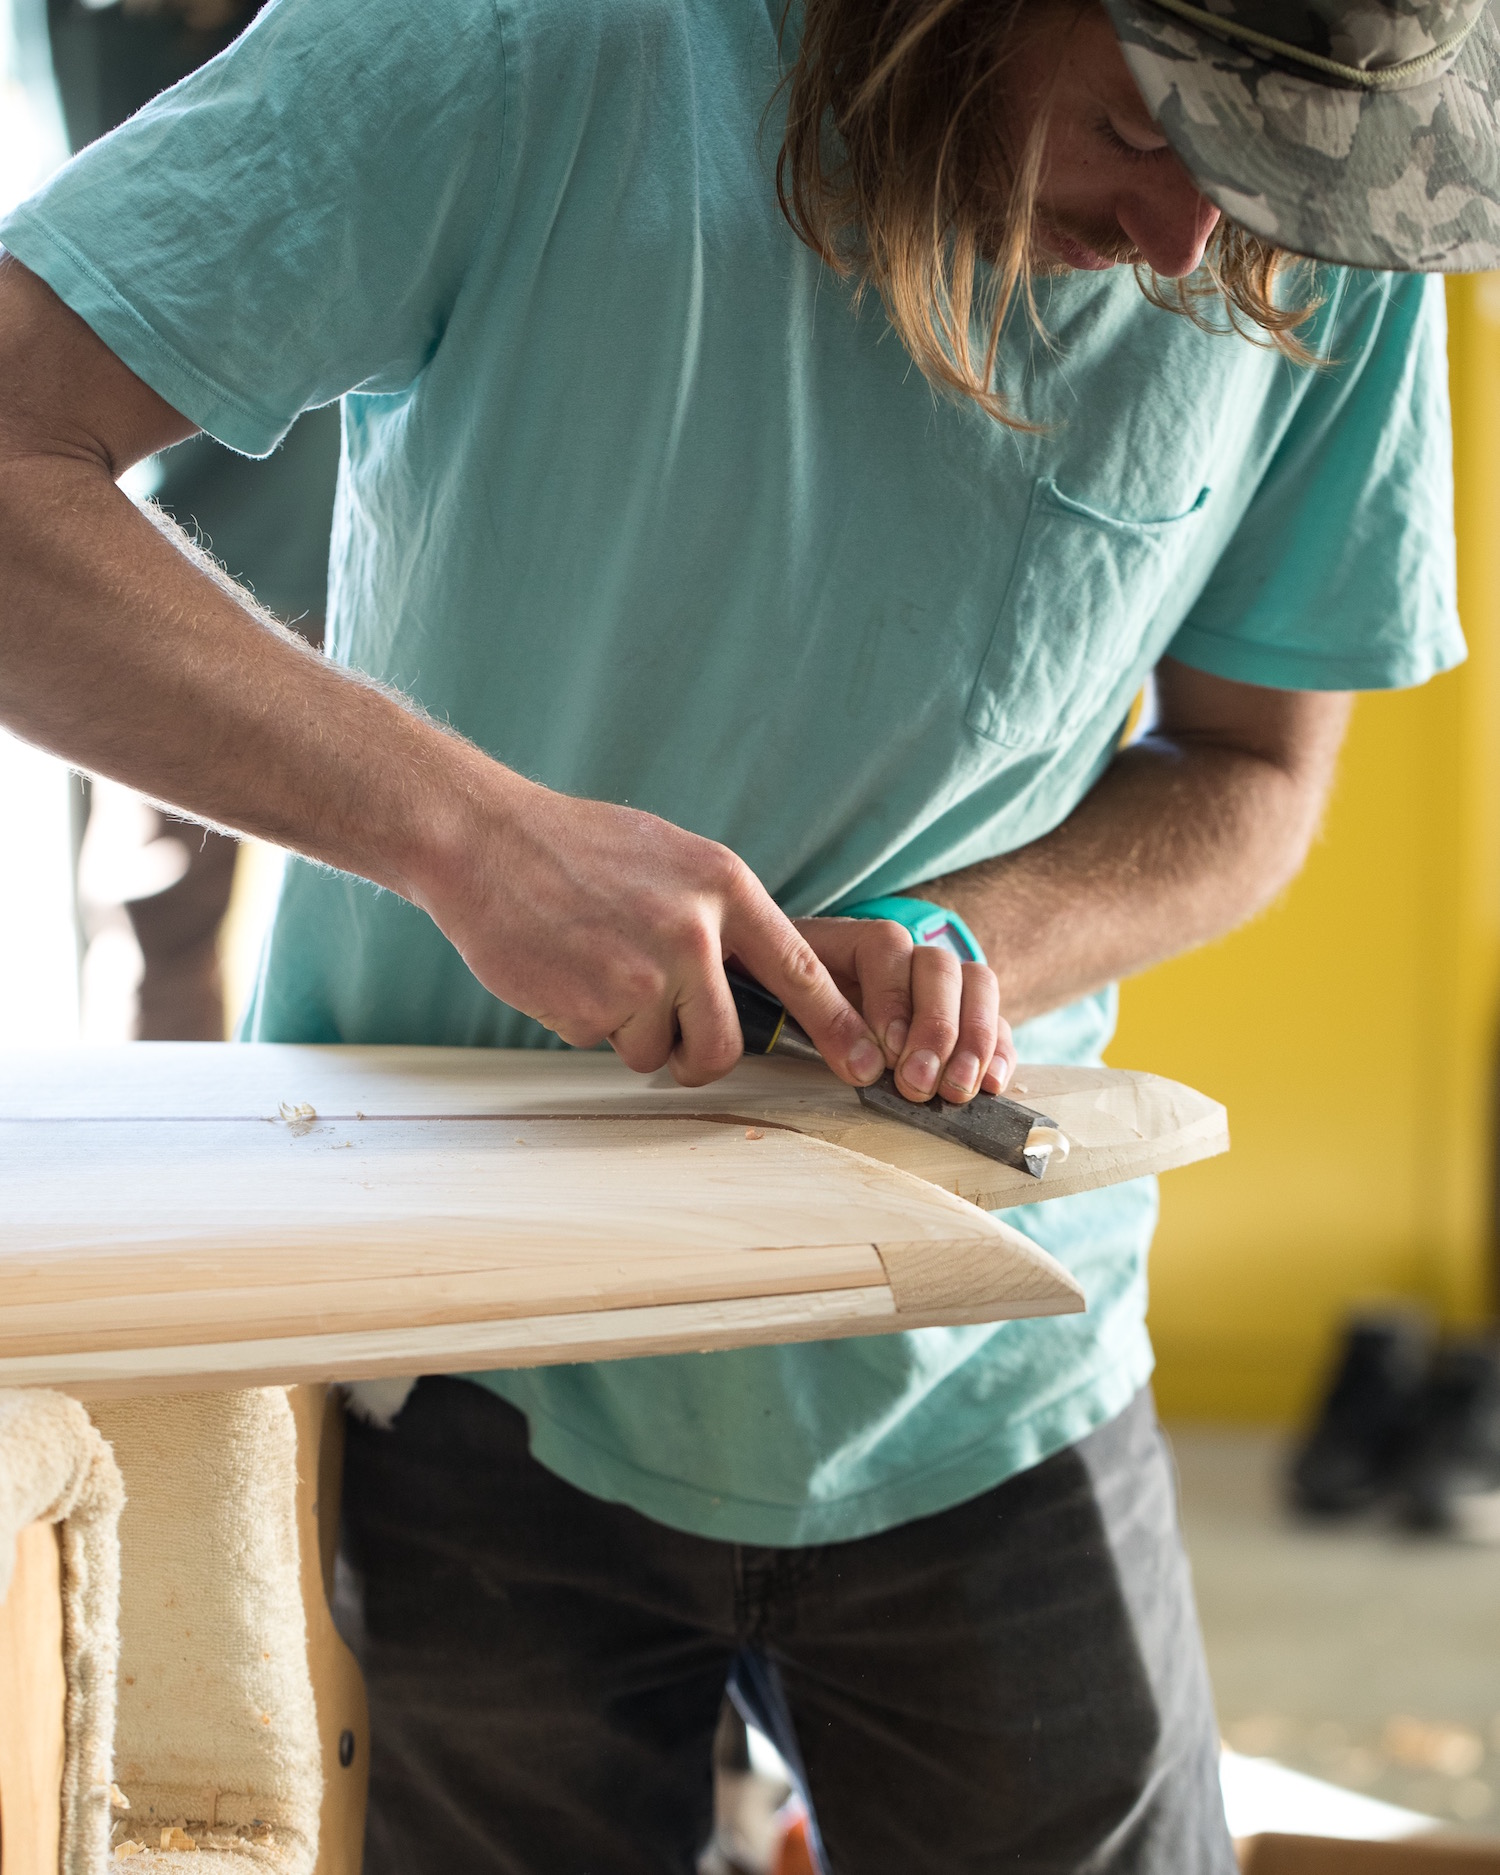 Nolan Collins helps shape the tail of a surfboard with a chisel.